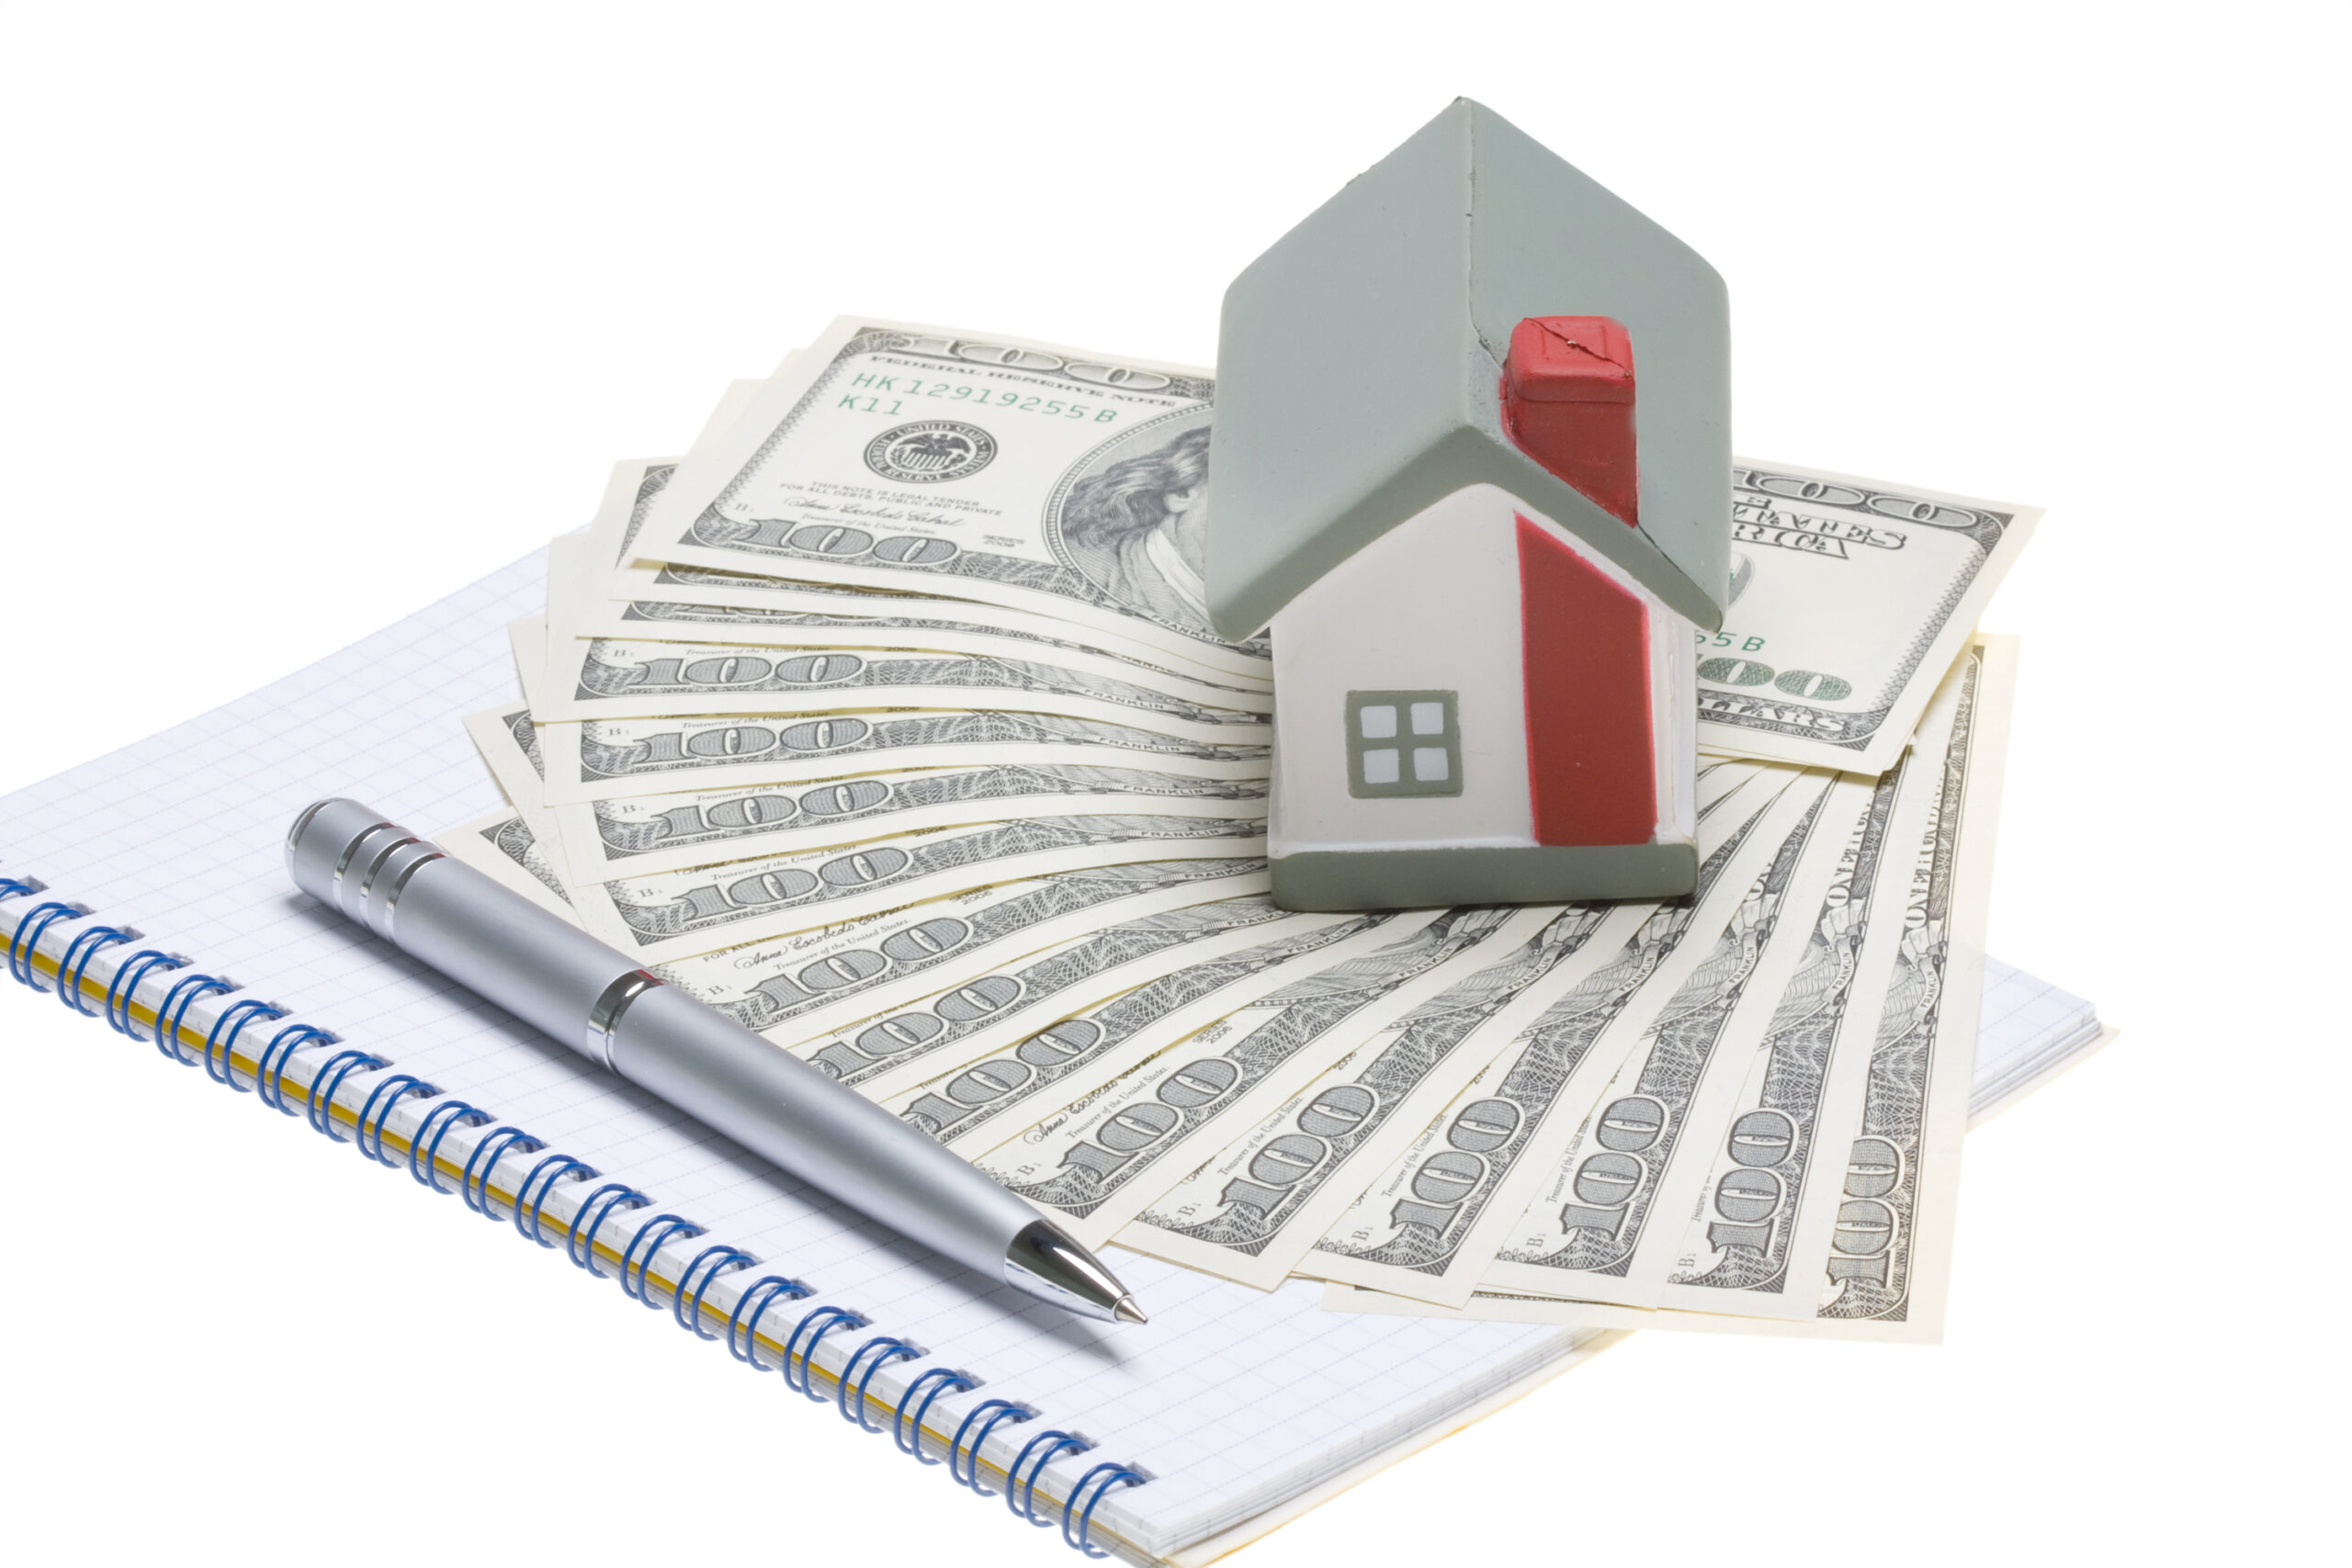 Cash for buying a house